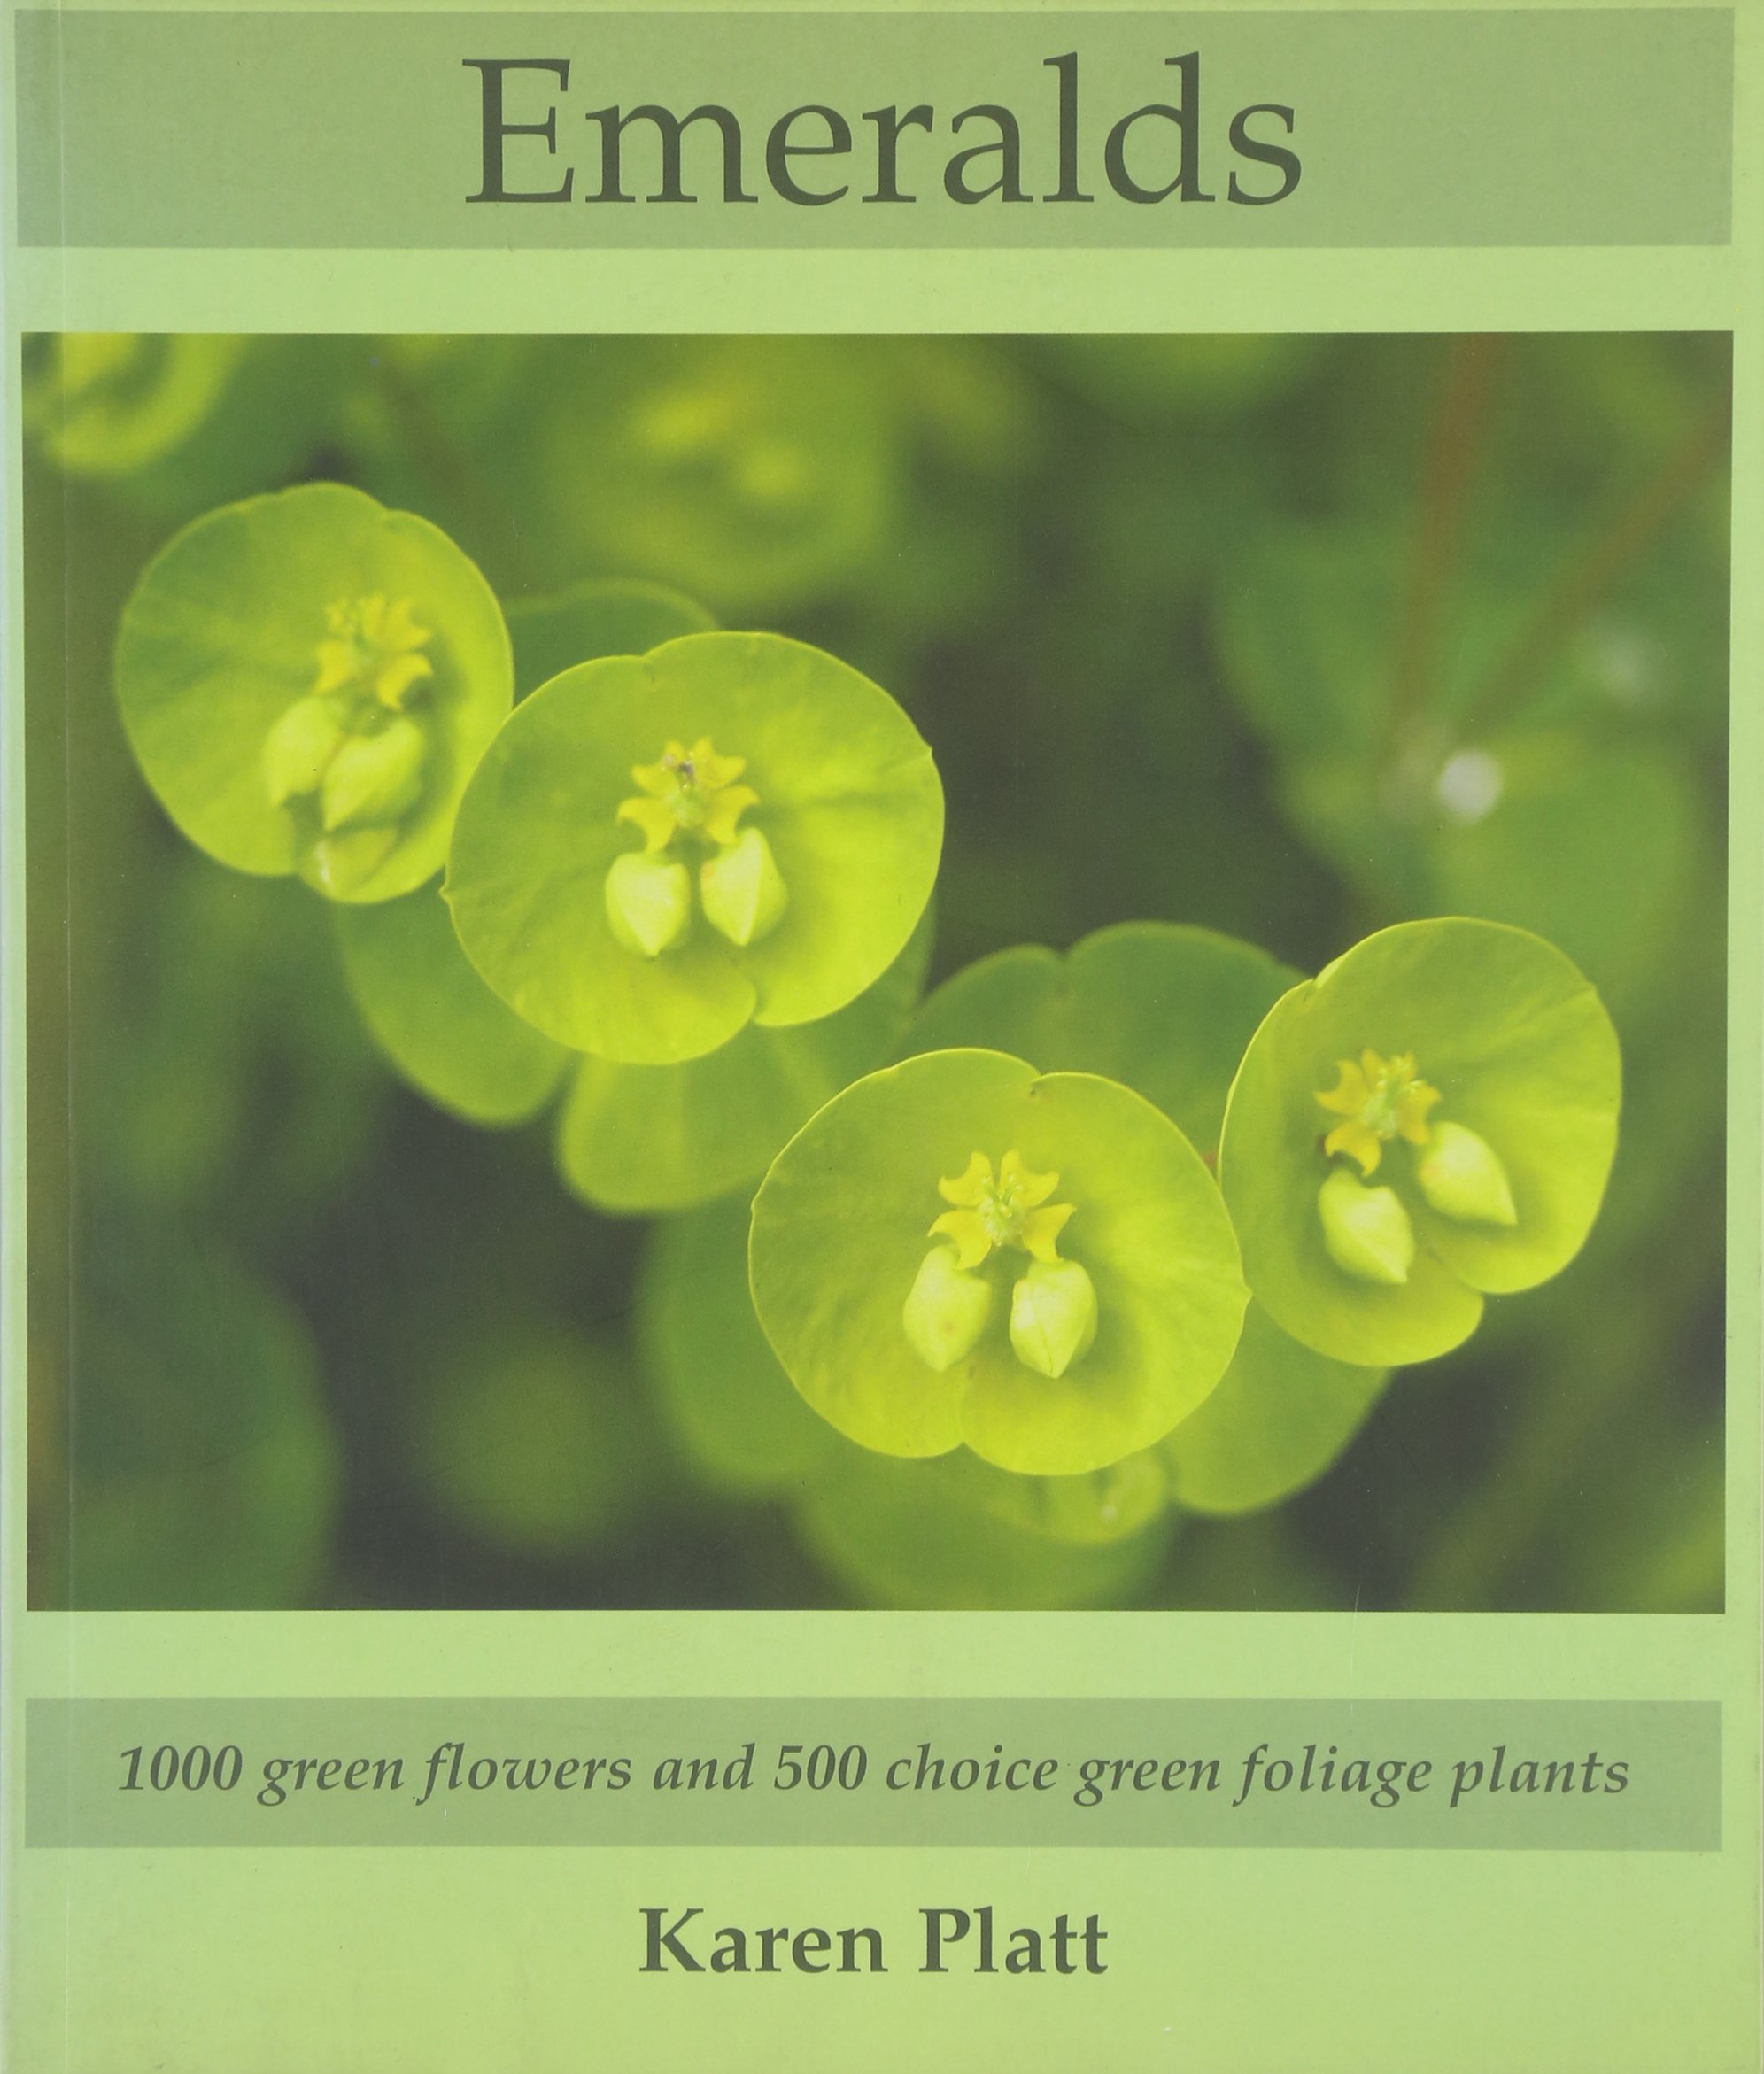 Emeralds: 1000 Green Flowers and 500 Choice Green Foliage Plants